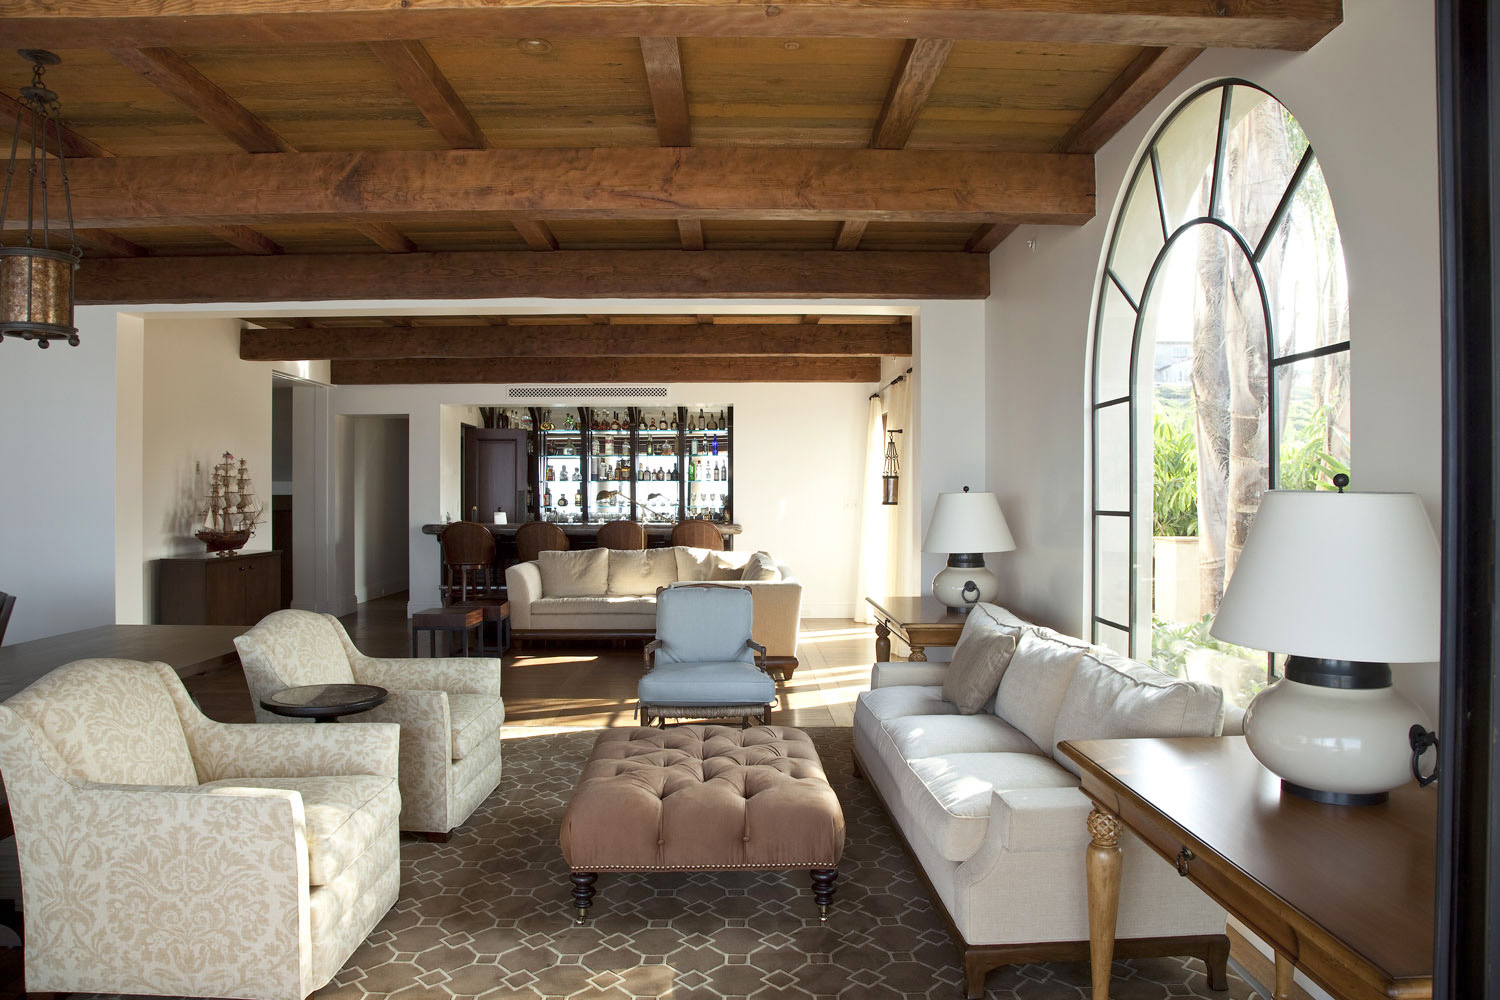 Contemporary-Spanish-Bar-Beamed-Tongue-Groove-Ceiling-Arched-Window-Corbin-Reeves.jpg